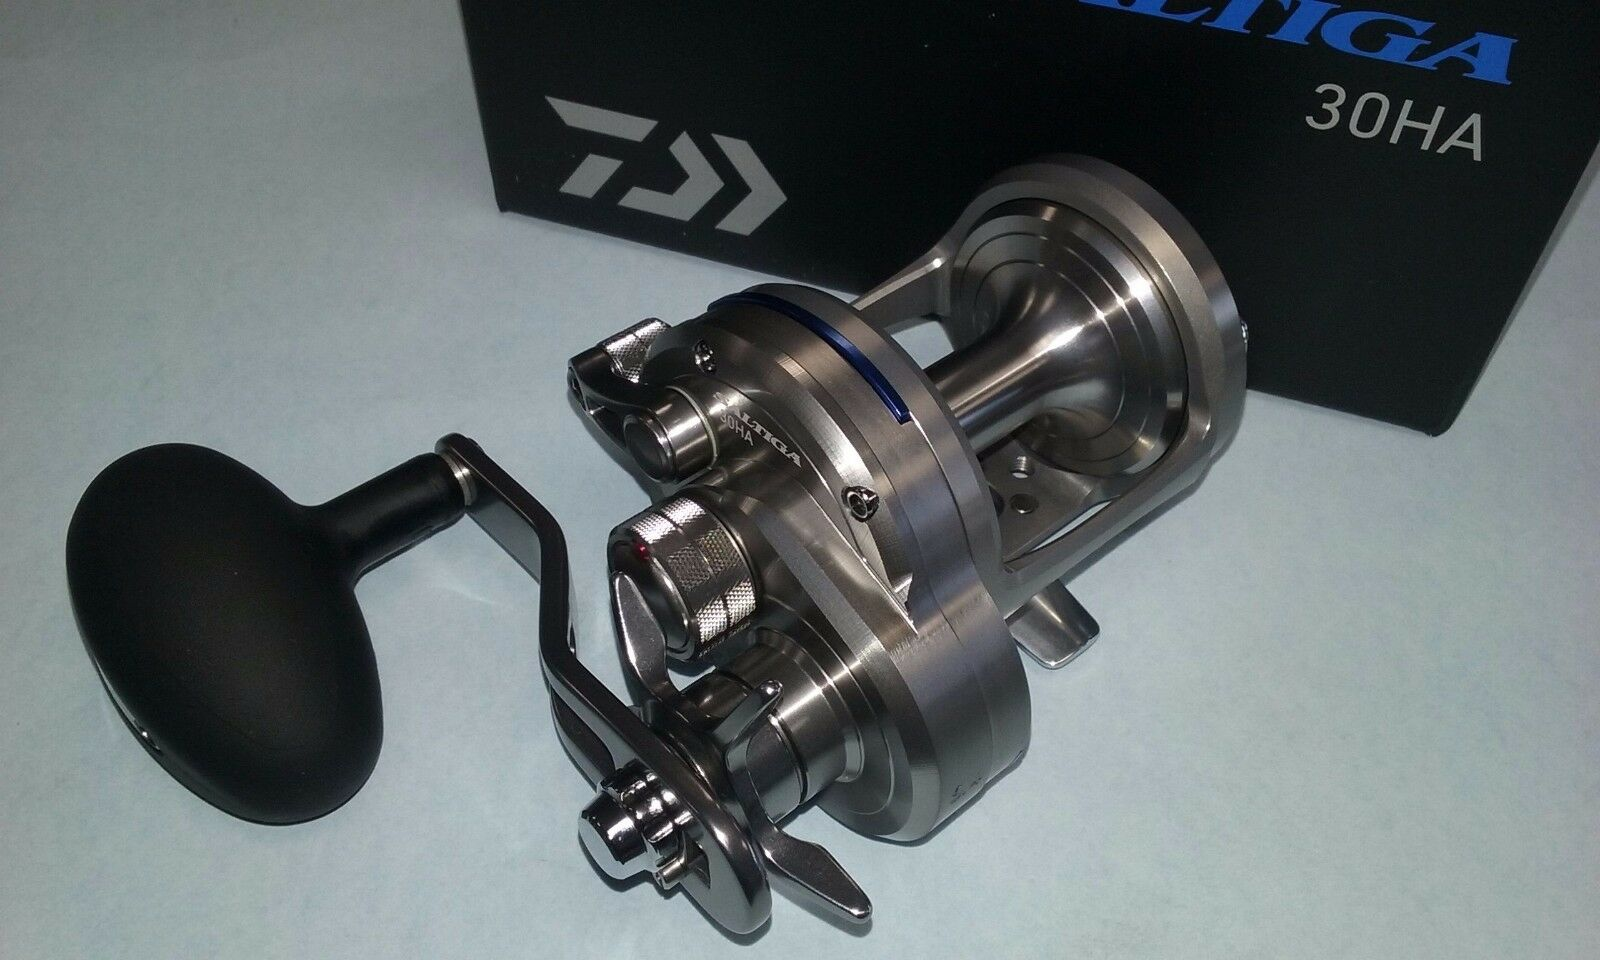 Imported From Abroad Daiwa Ss Air 8.1l From Japan Reels Sporting Goods 2881 We Take Customers As Our Gods